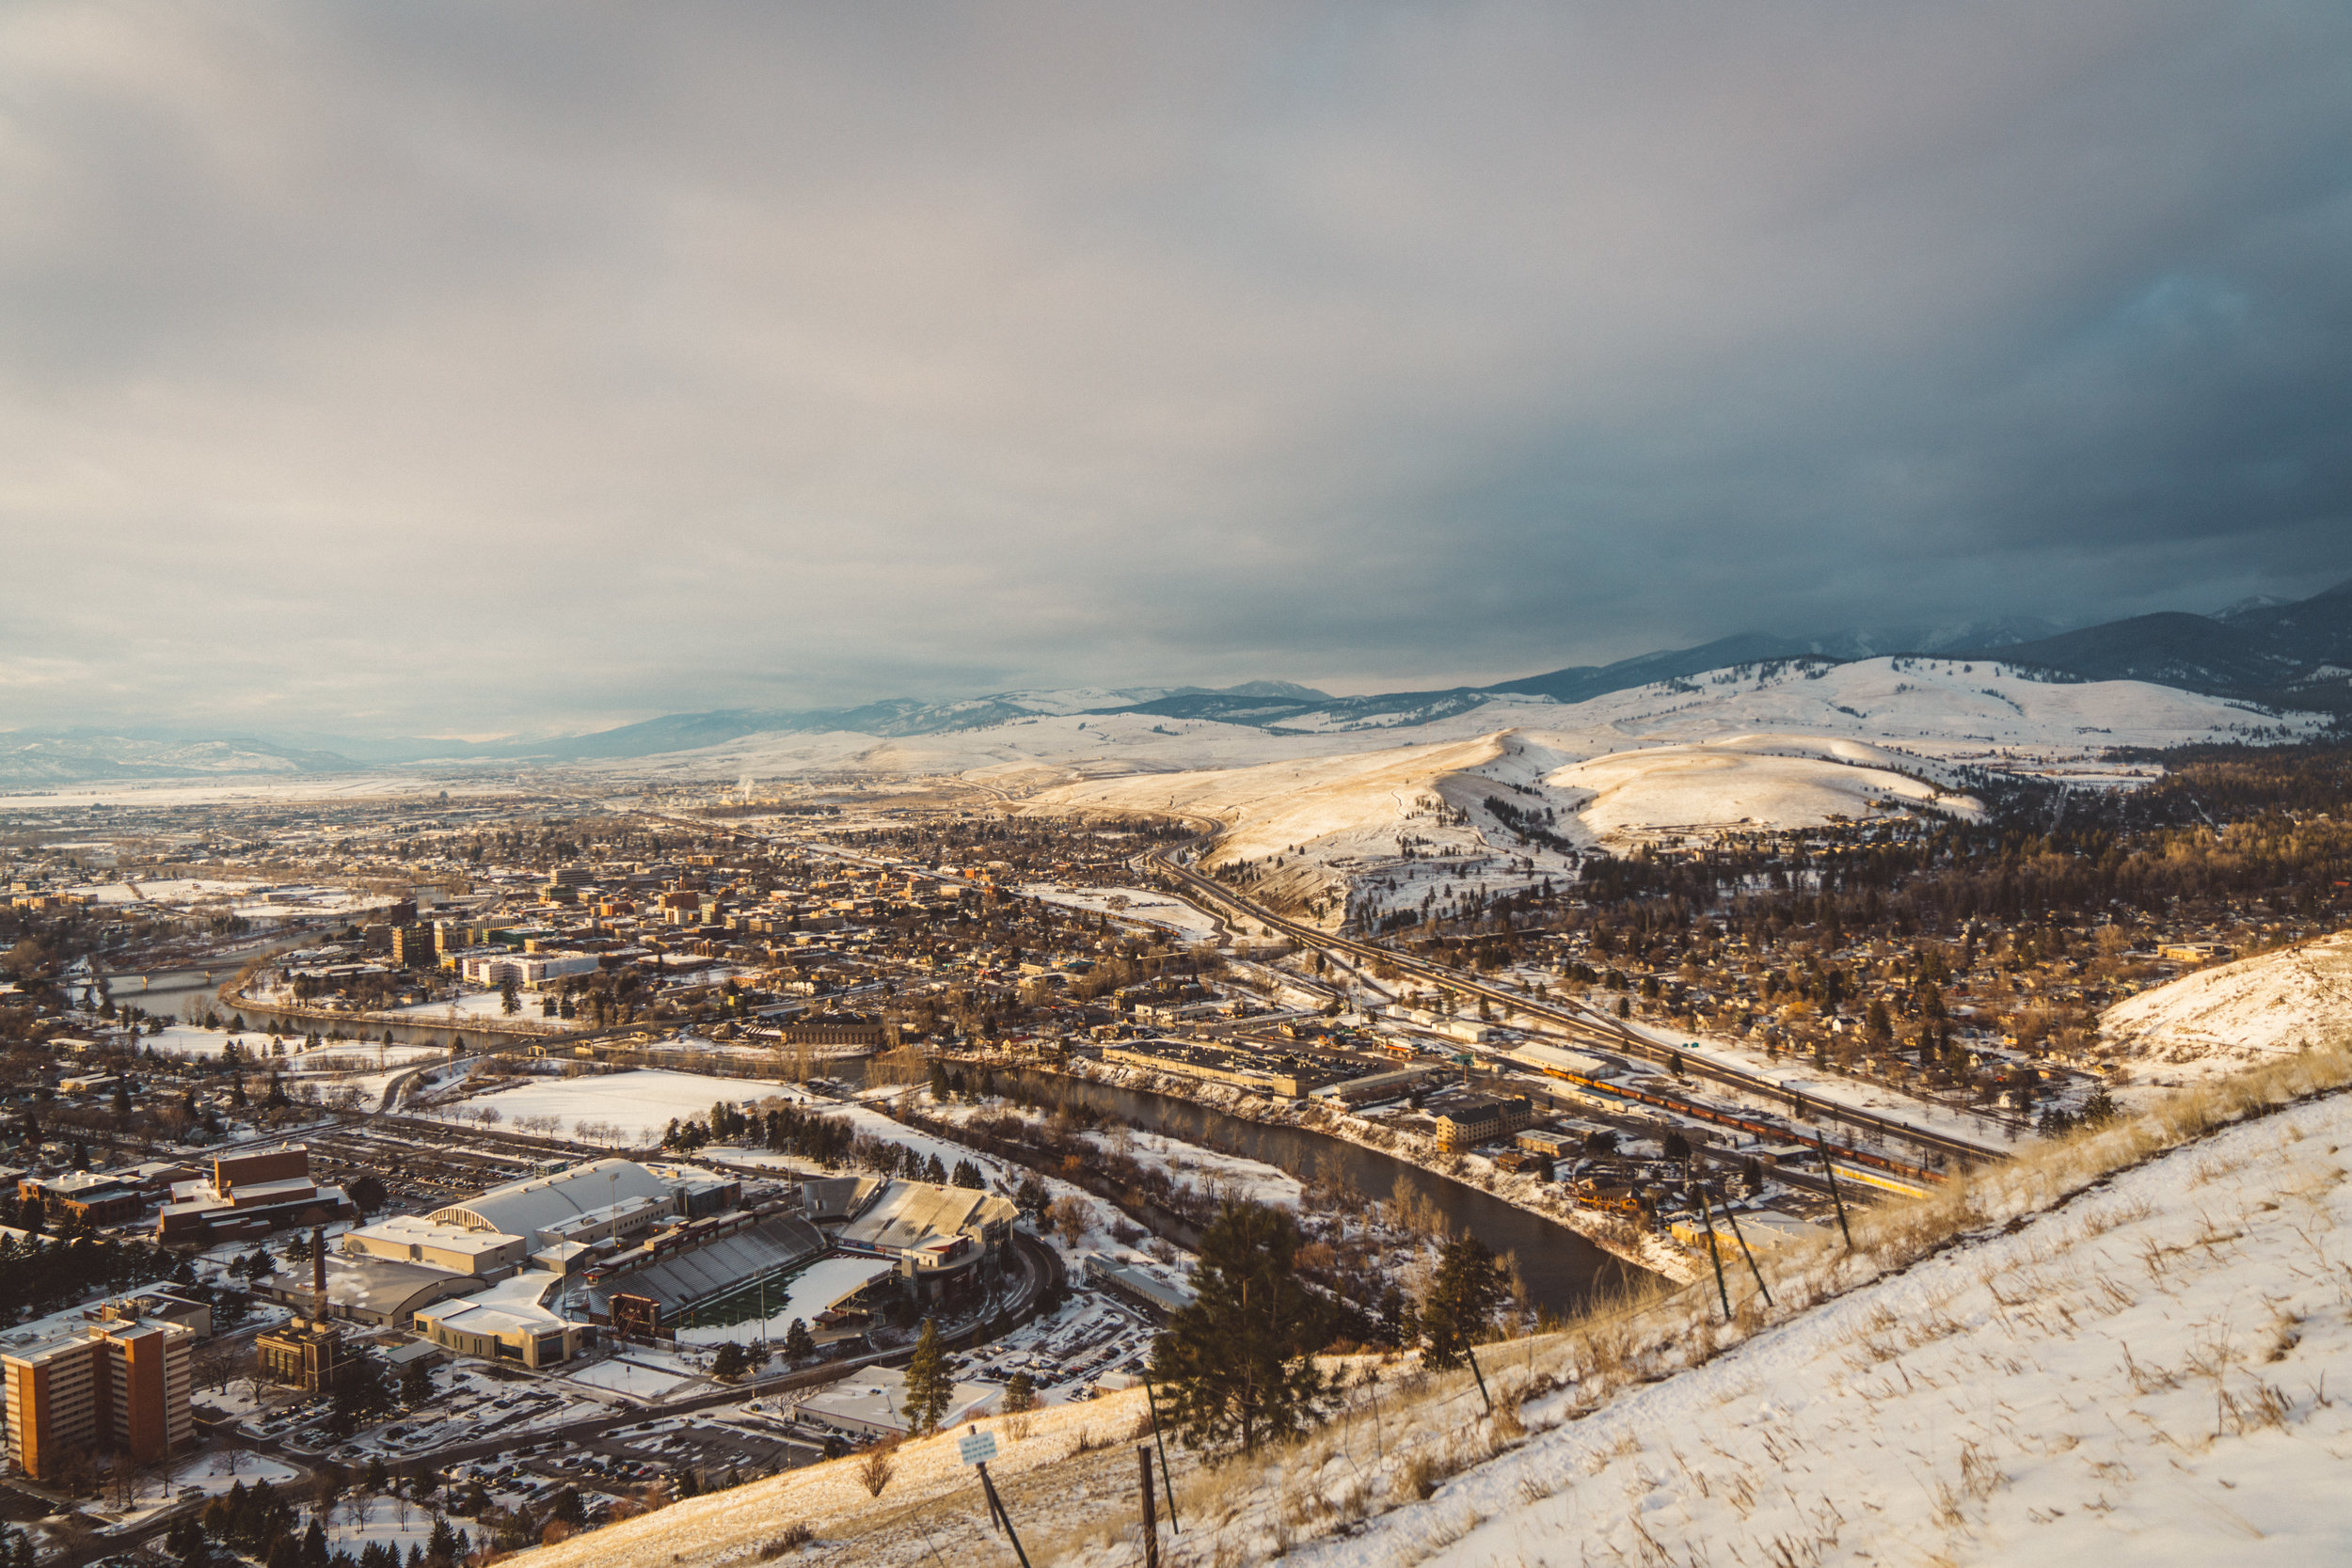 After we left the range we headed to Missoula, where we climbed to the 'M', which overlooks the city.